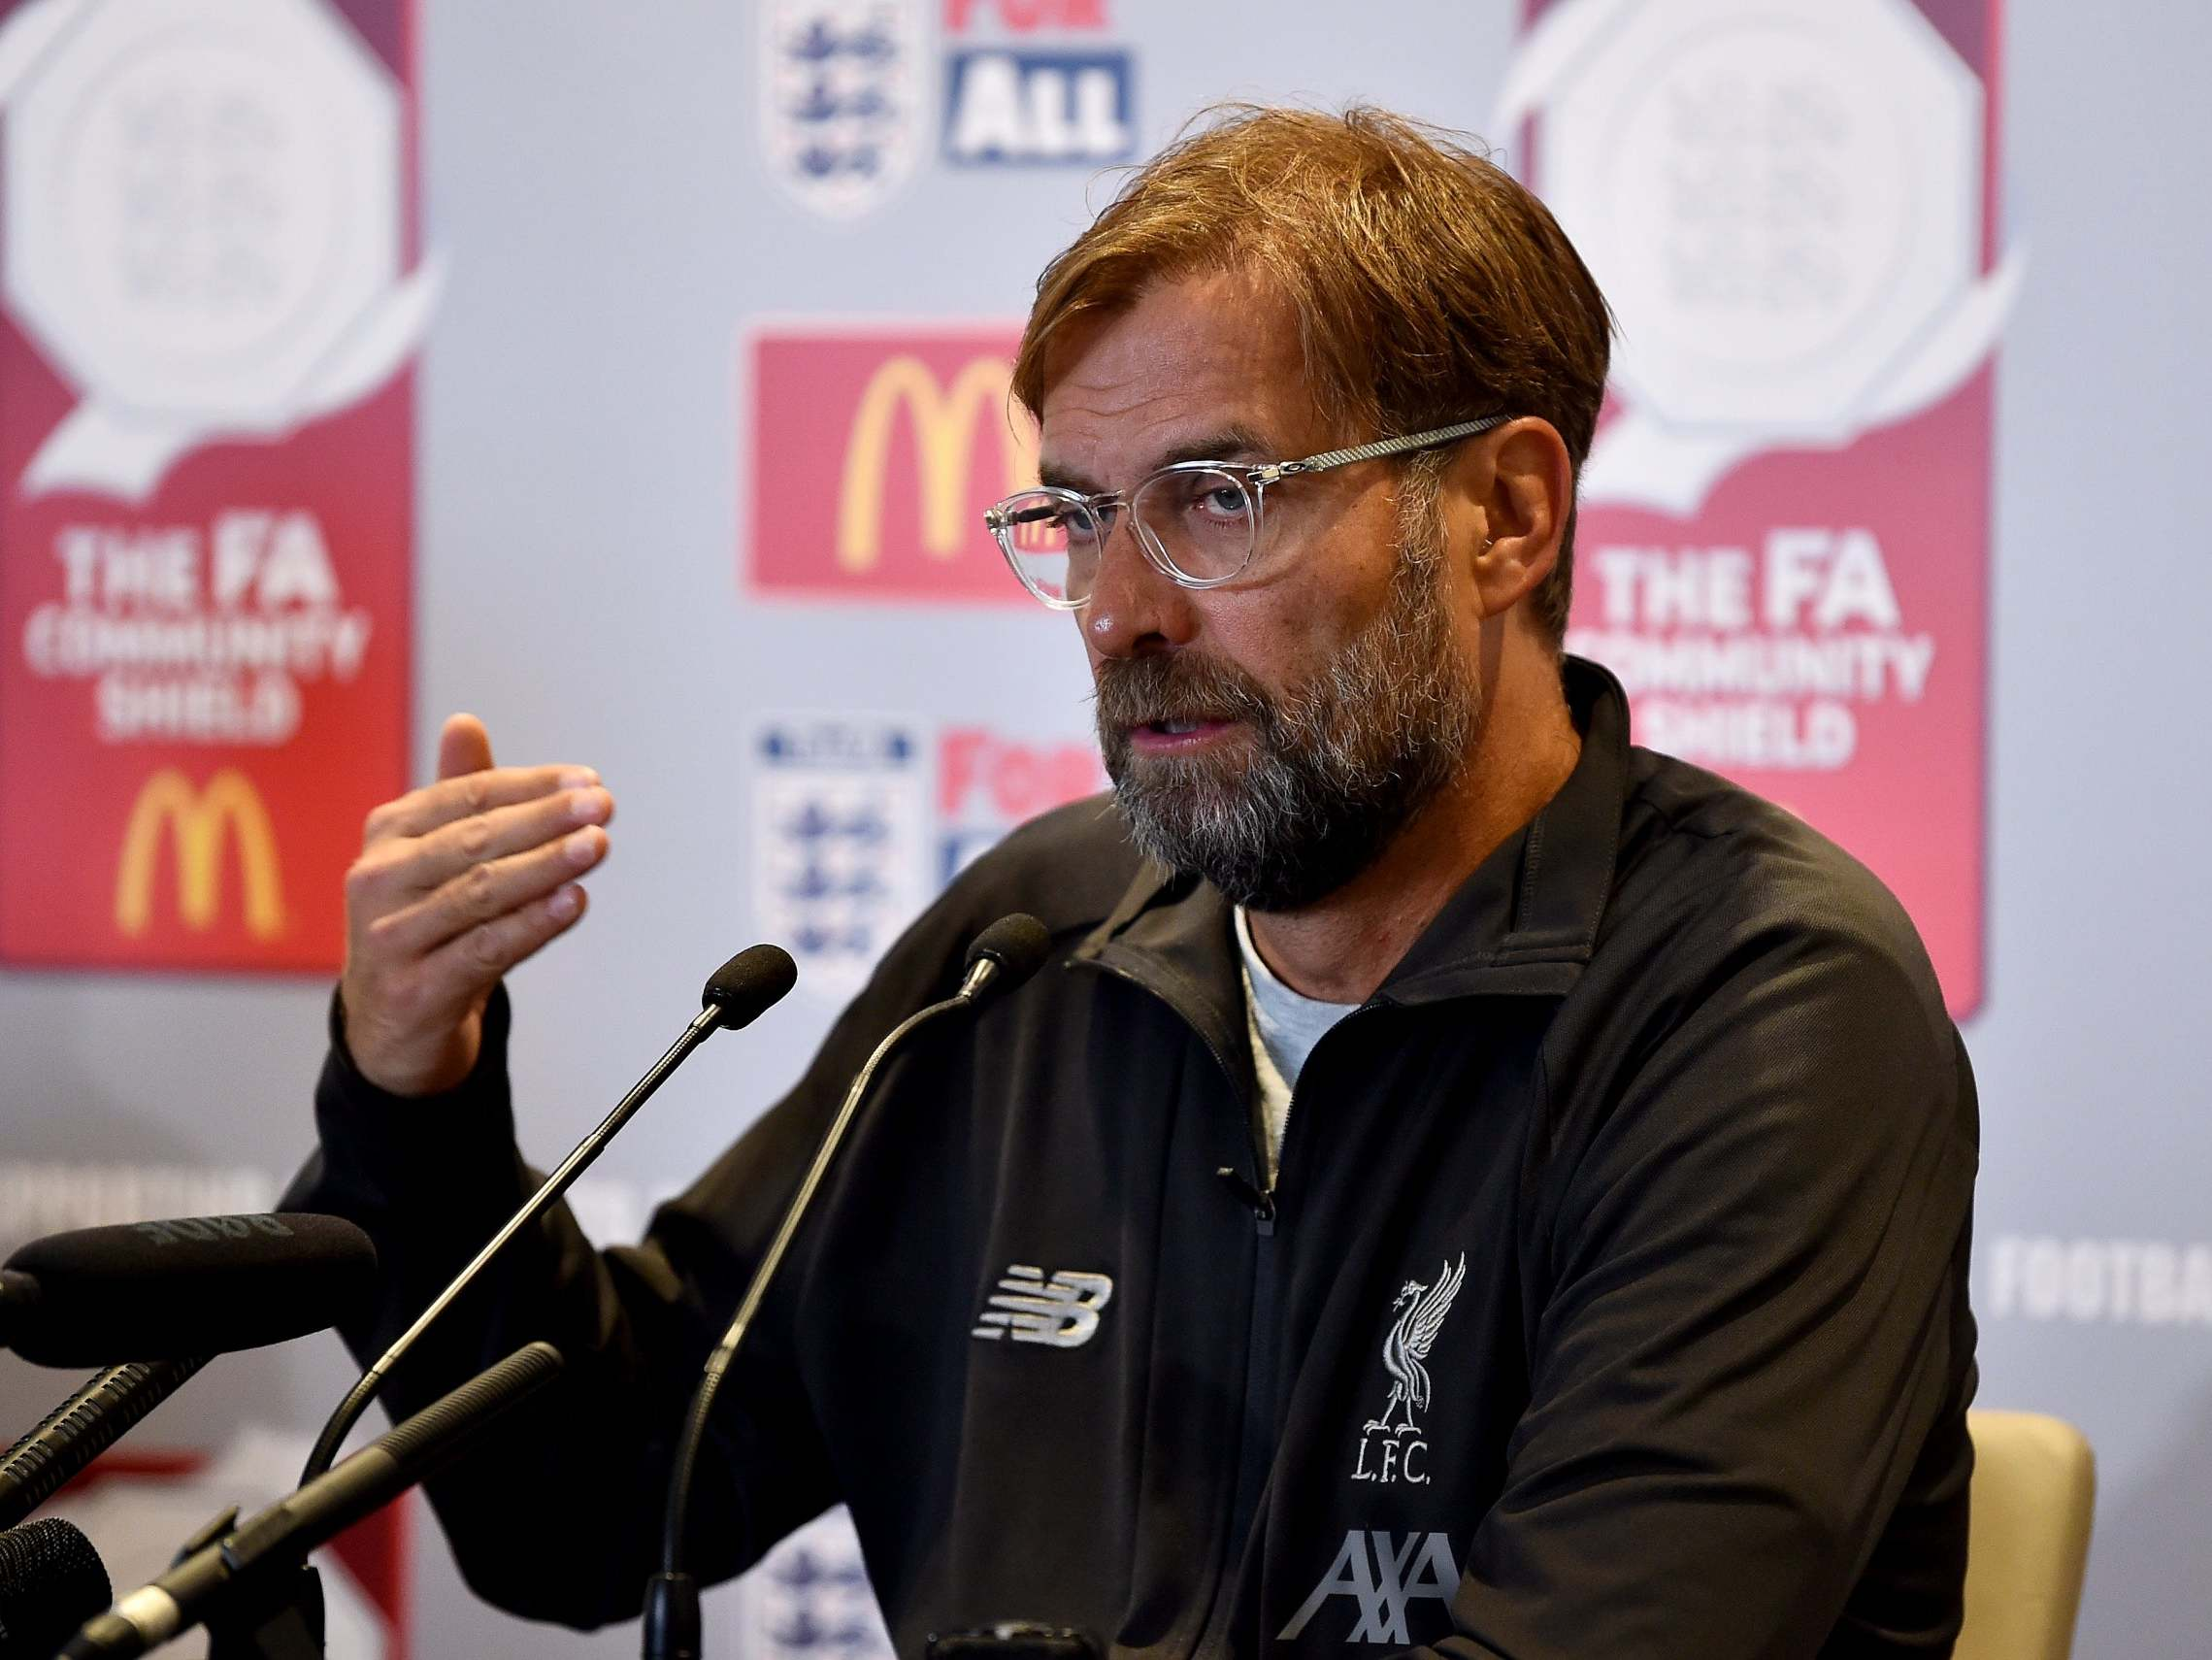 jurgen klopp Press Confrence Photo